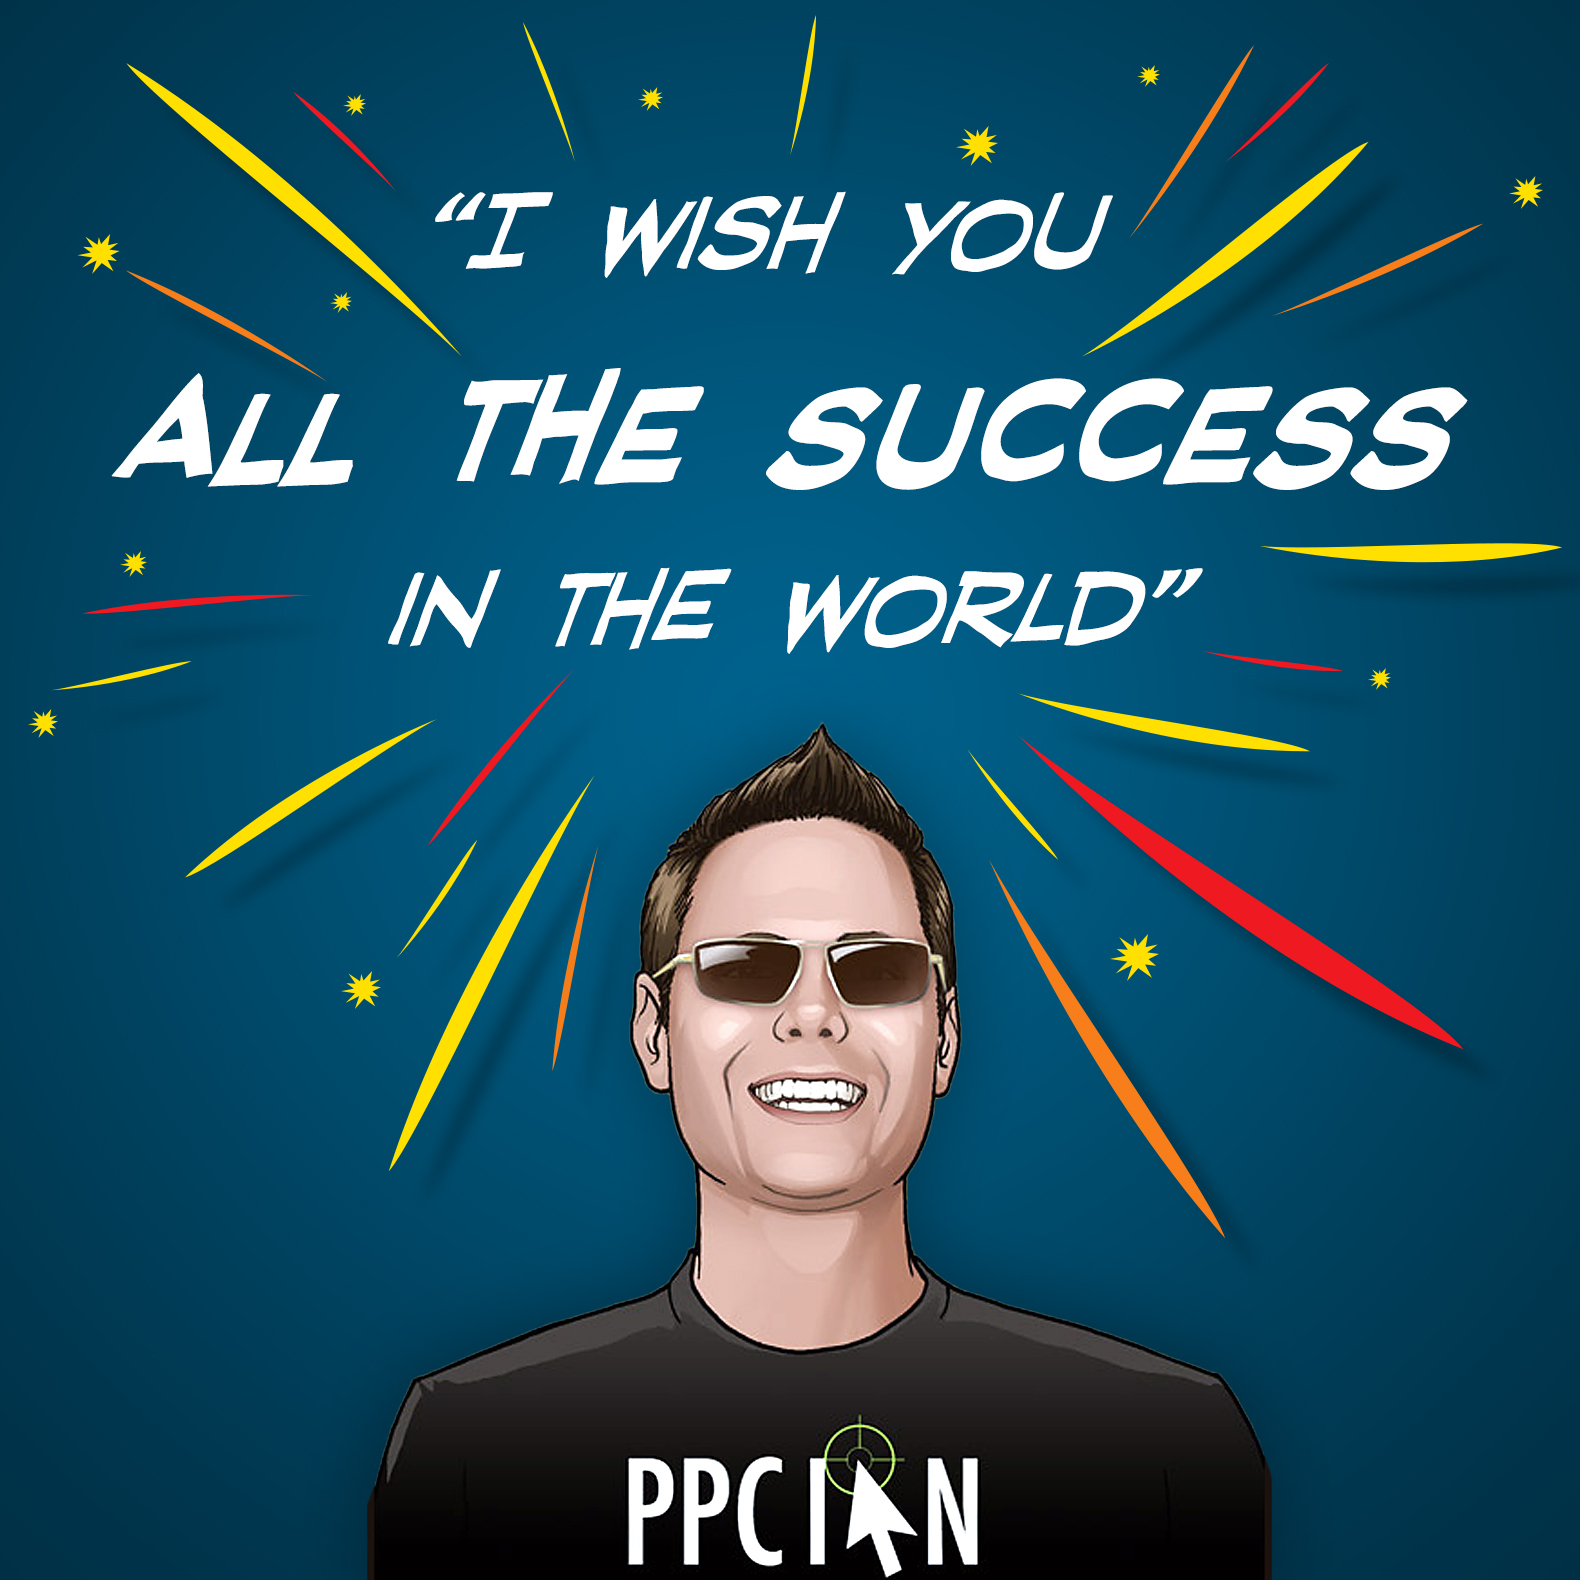 Wish You Success Quotes: Digital Marketing & Motivational Business Quotes